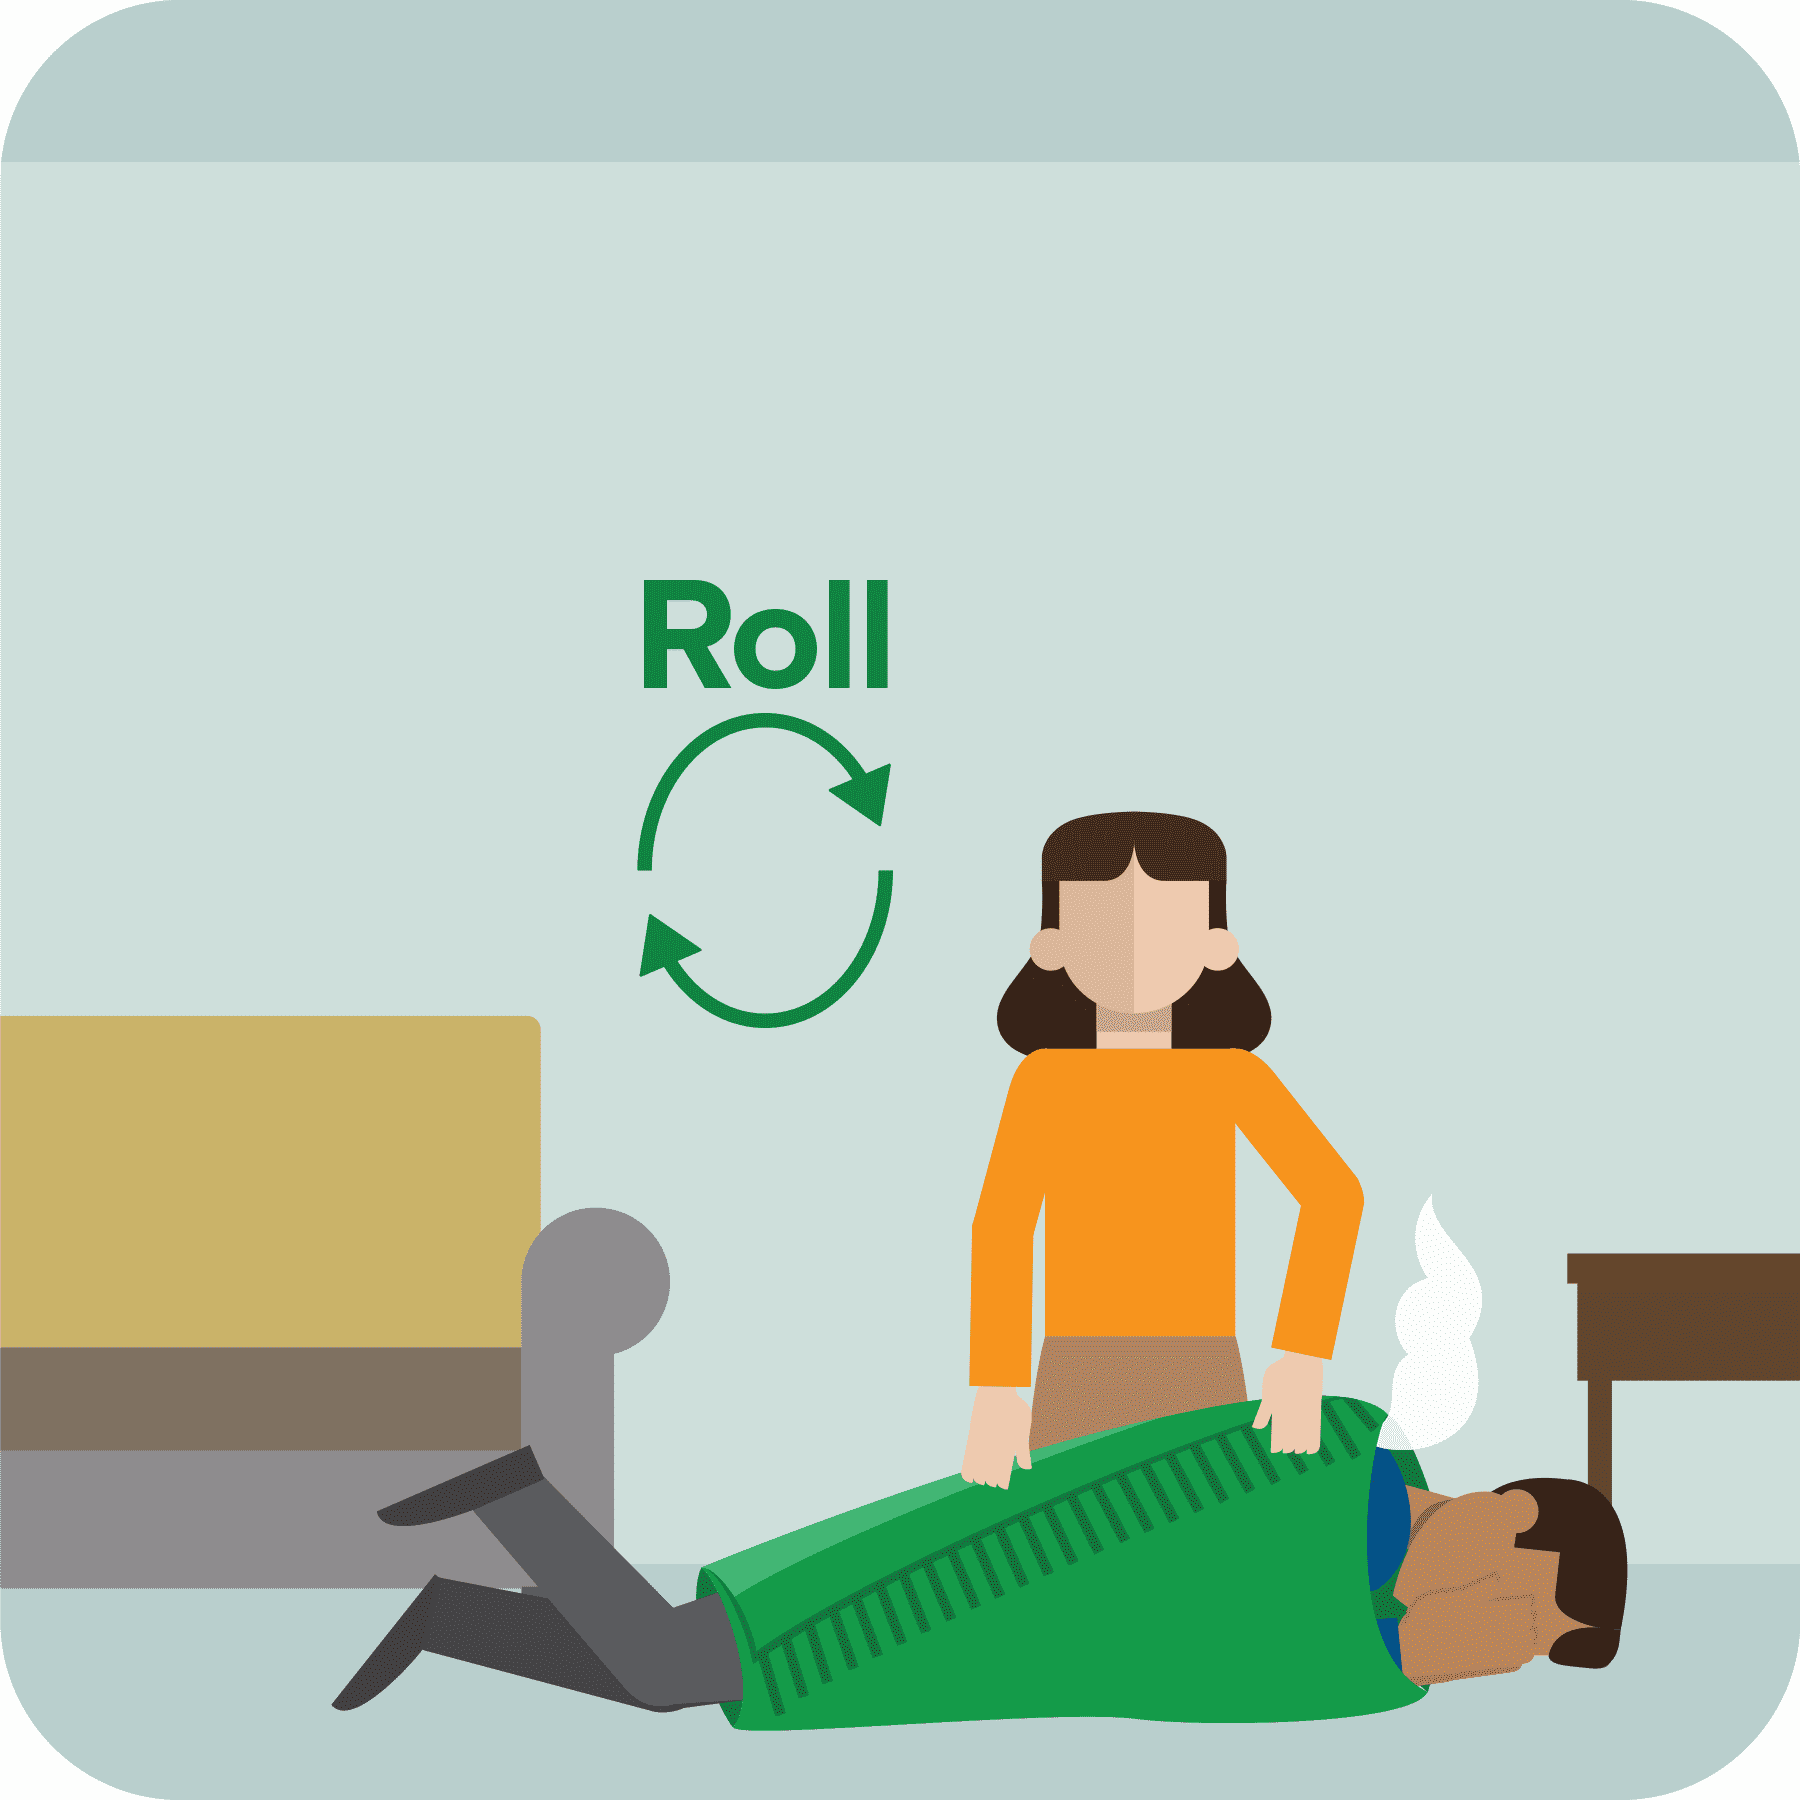 Woman helps man roll on the ground.